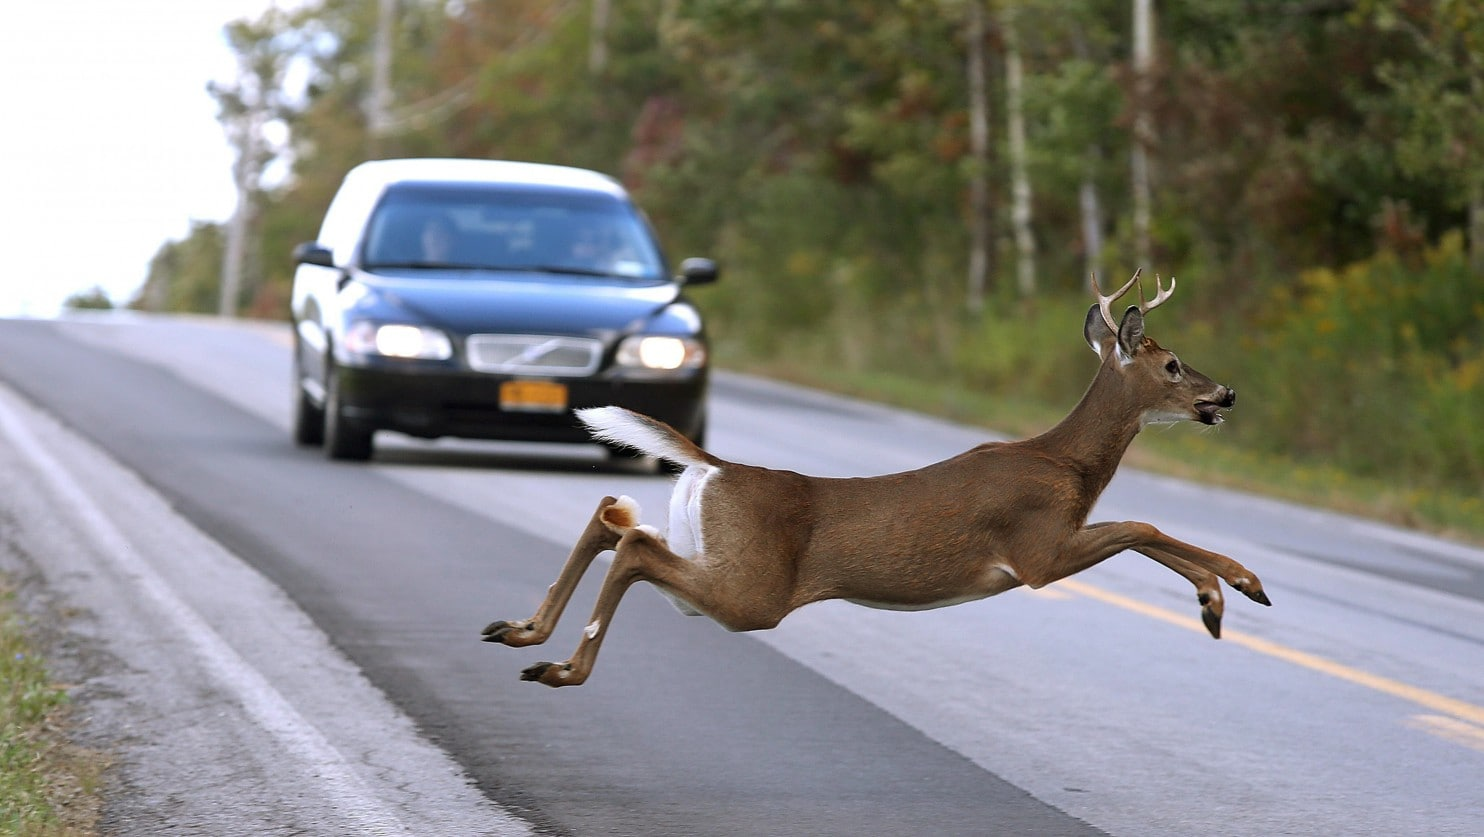 Deer darts out in front of oncoming vehicle